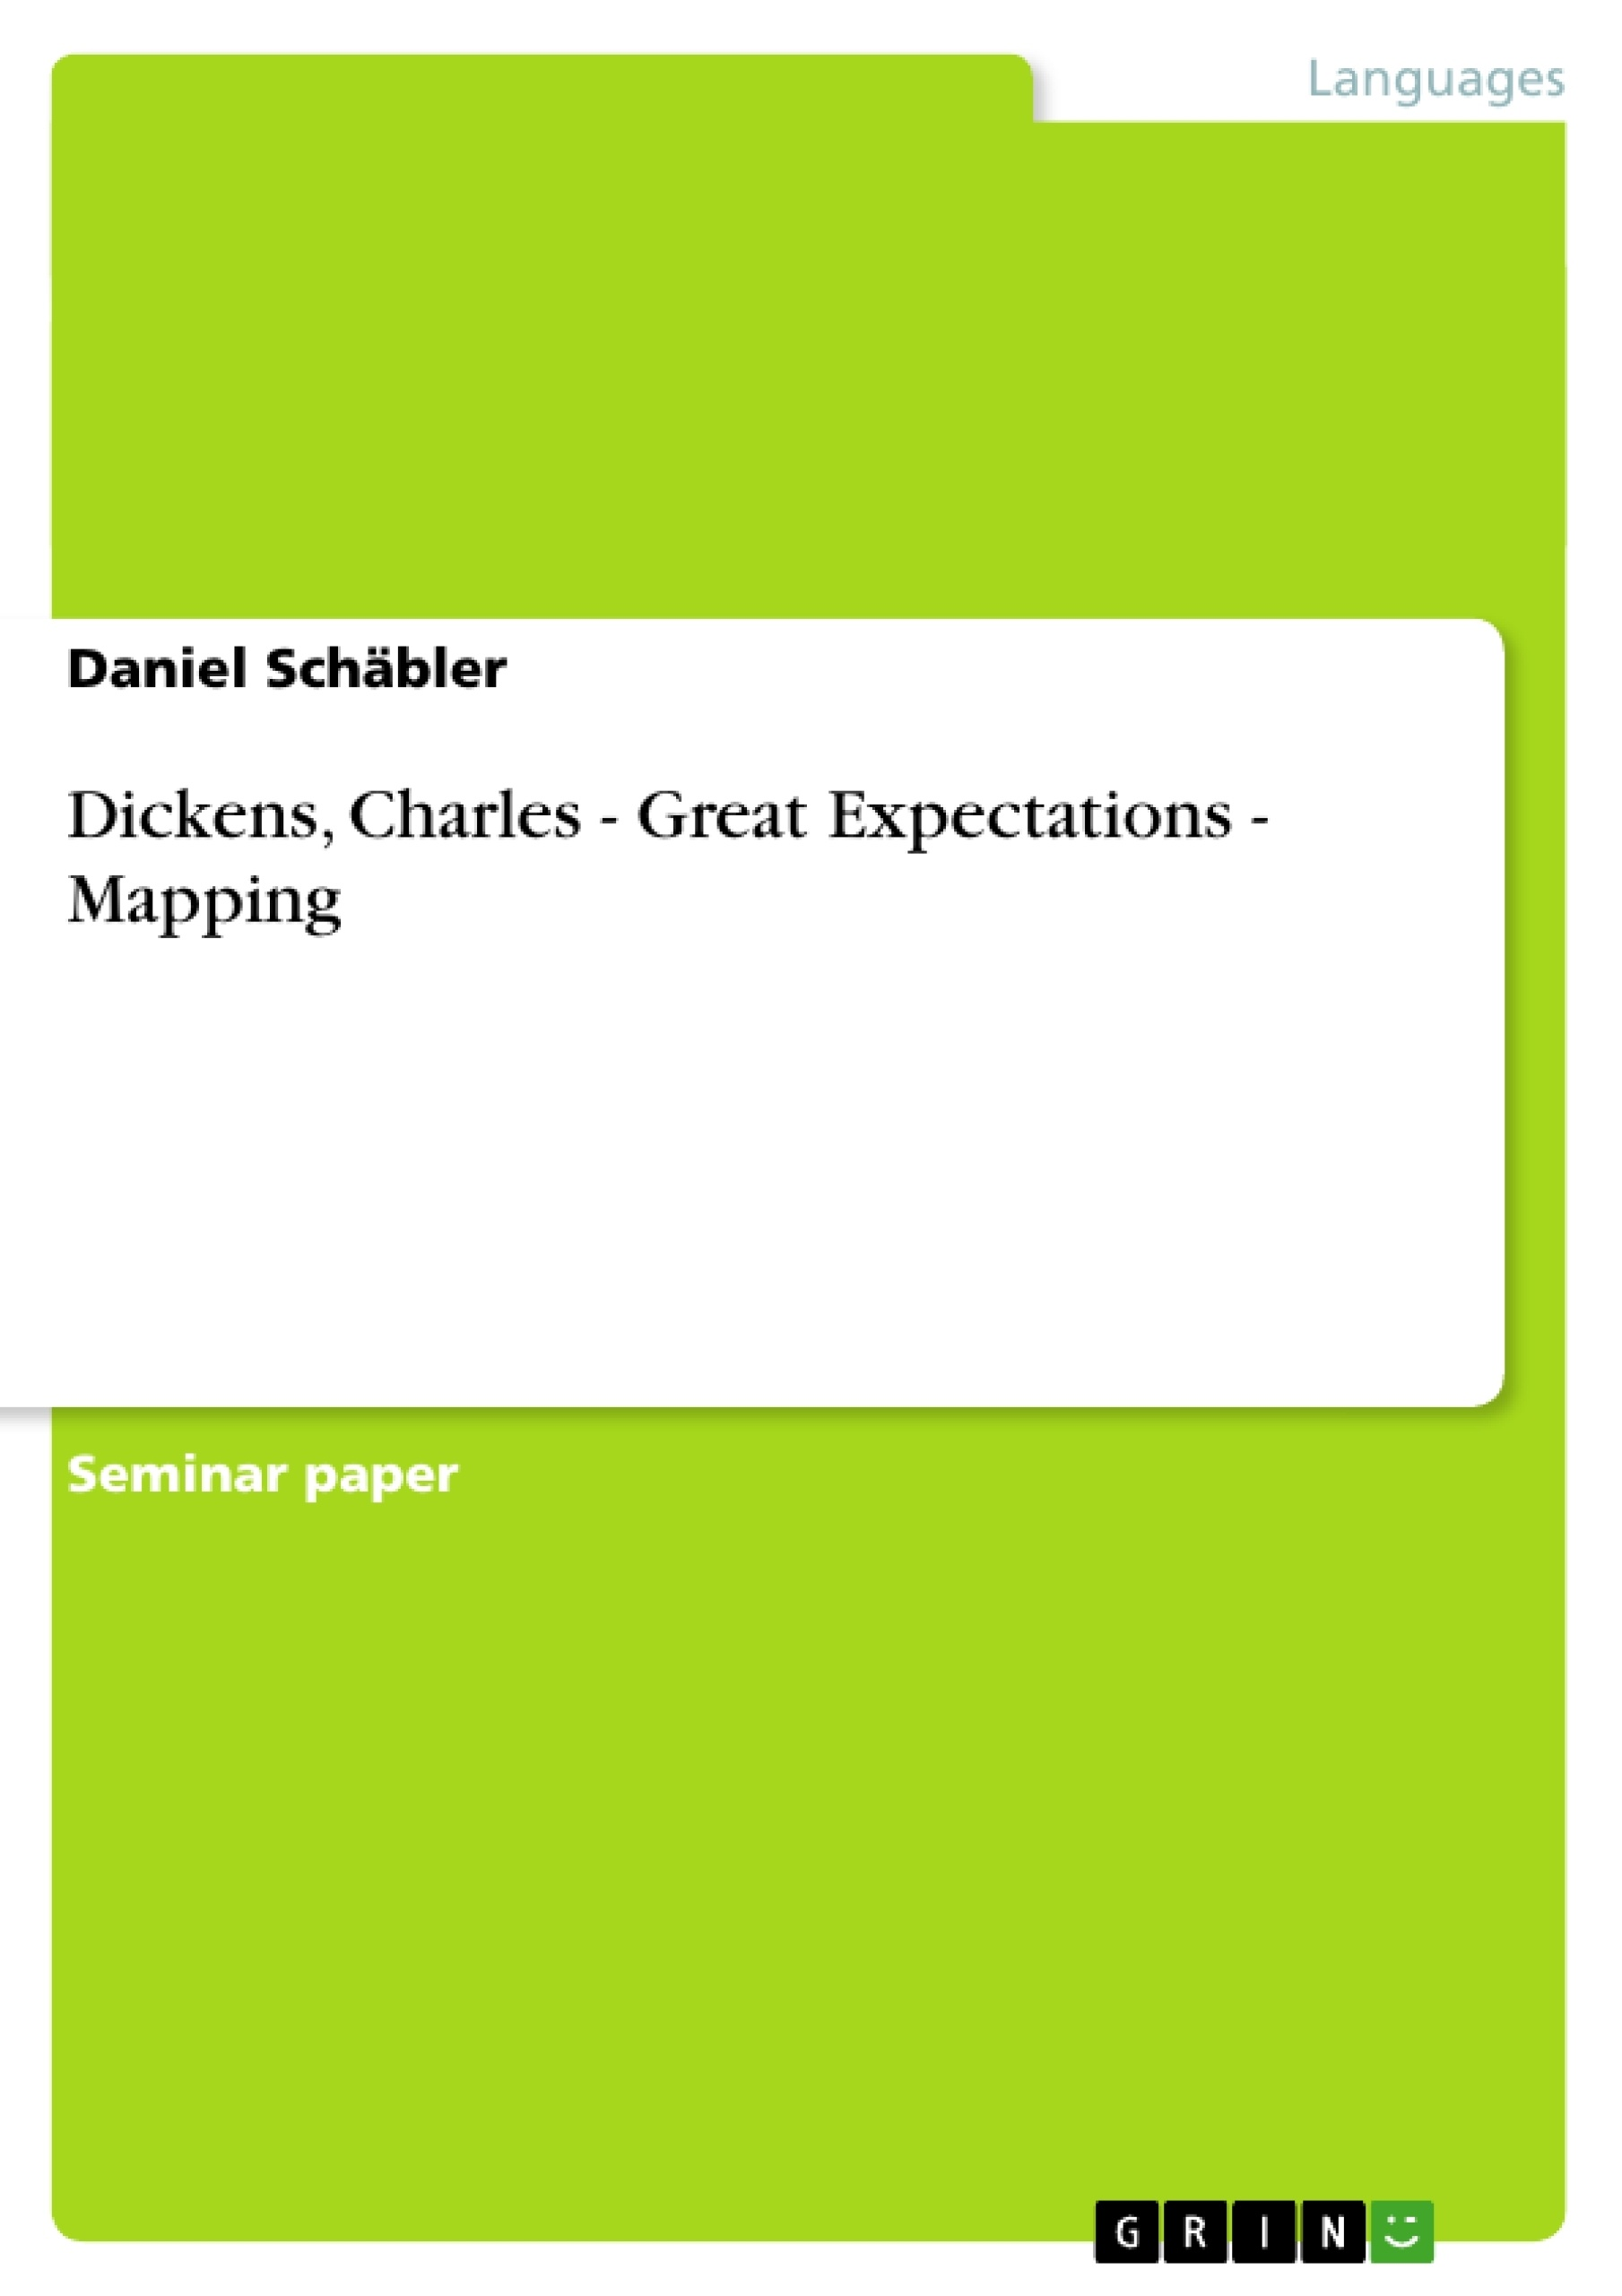 Title: Dickens, Charles - Great Expectations - Mapping